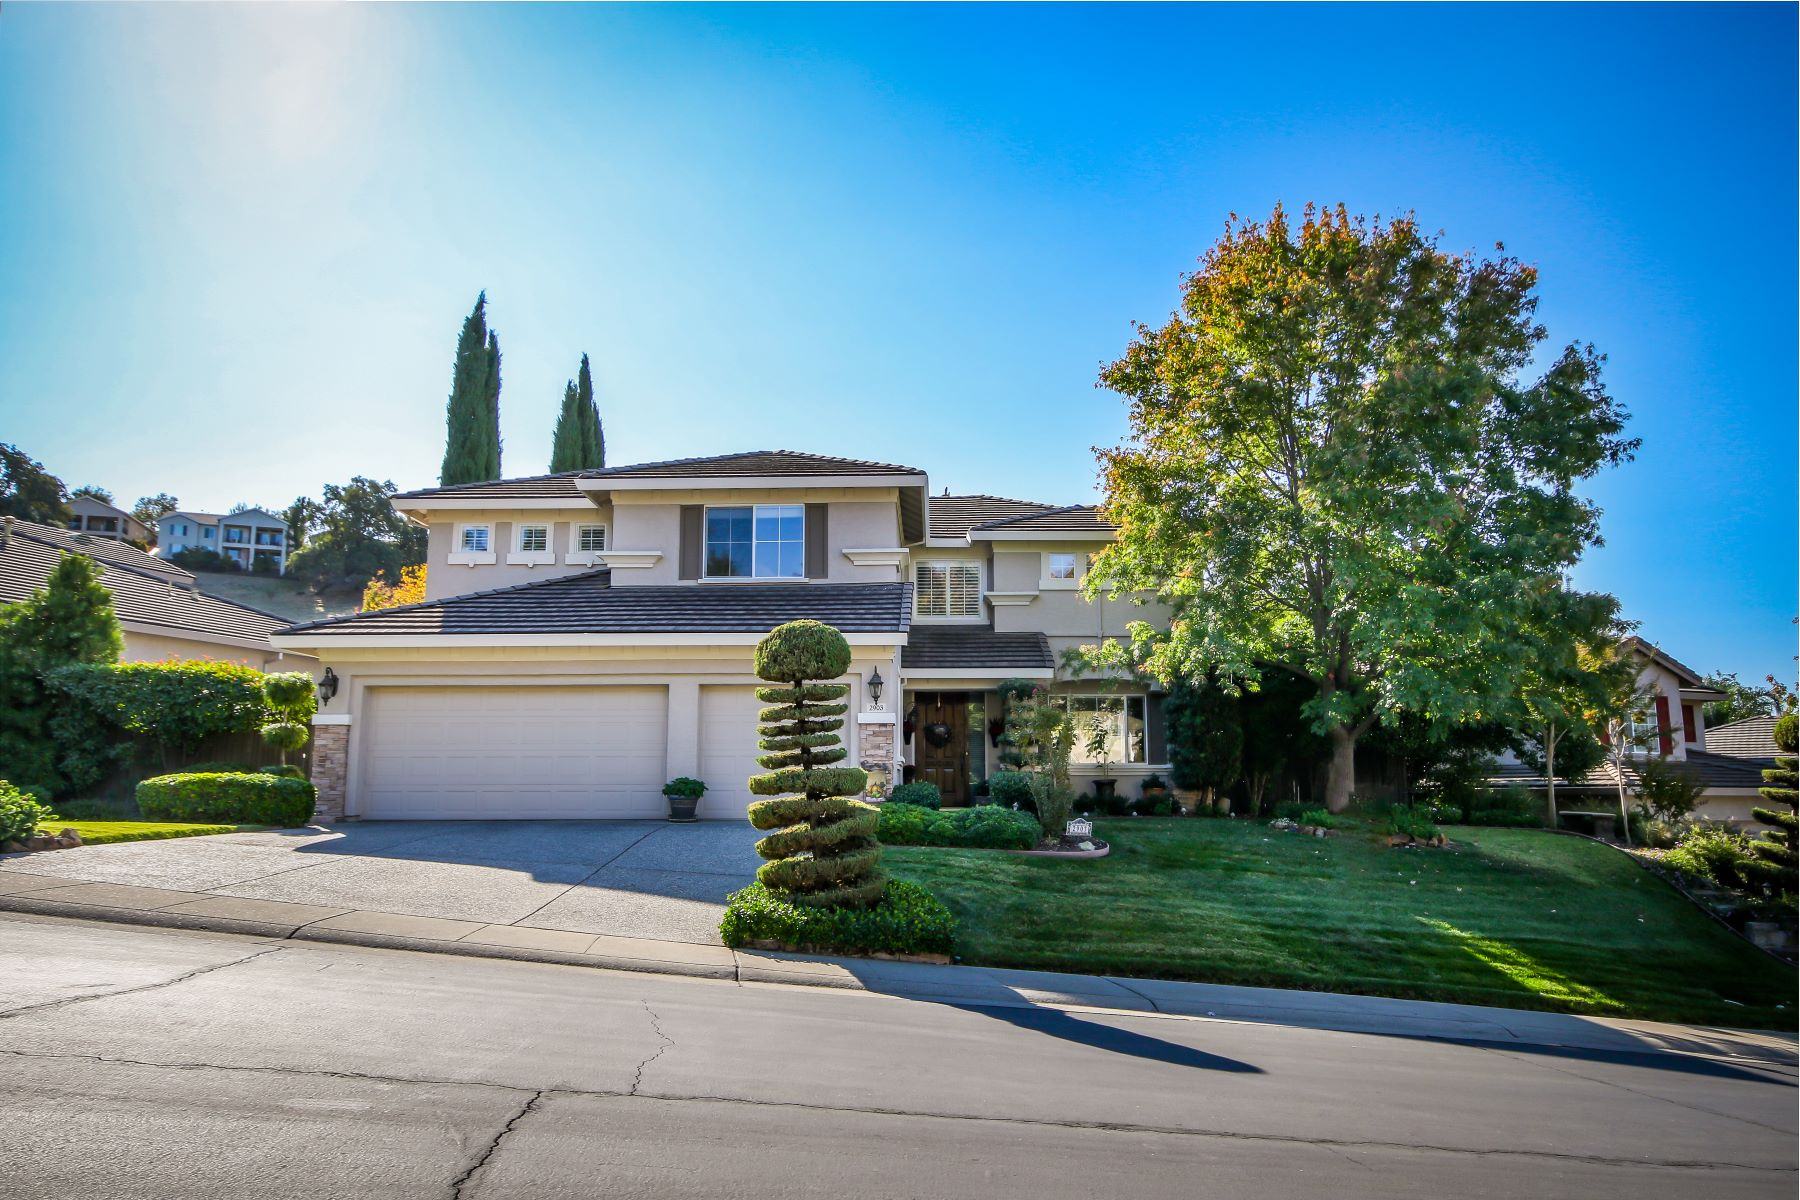 Single Family Homes for Sale at 2903 Old Oak Tree Way, Rocklin, CA 95765 2903 Old Oak Tree Way Rocklin, California 95765 United States